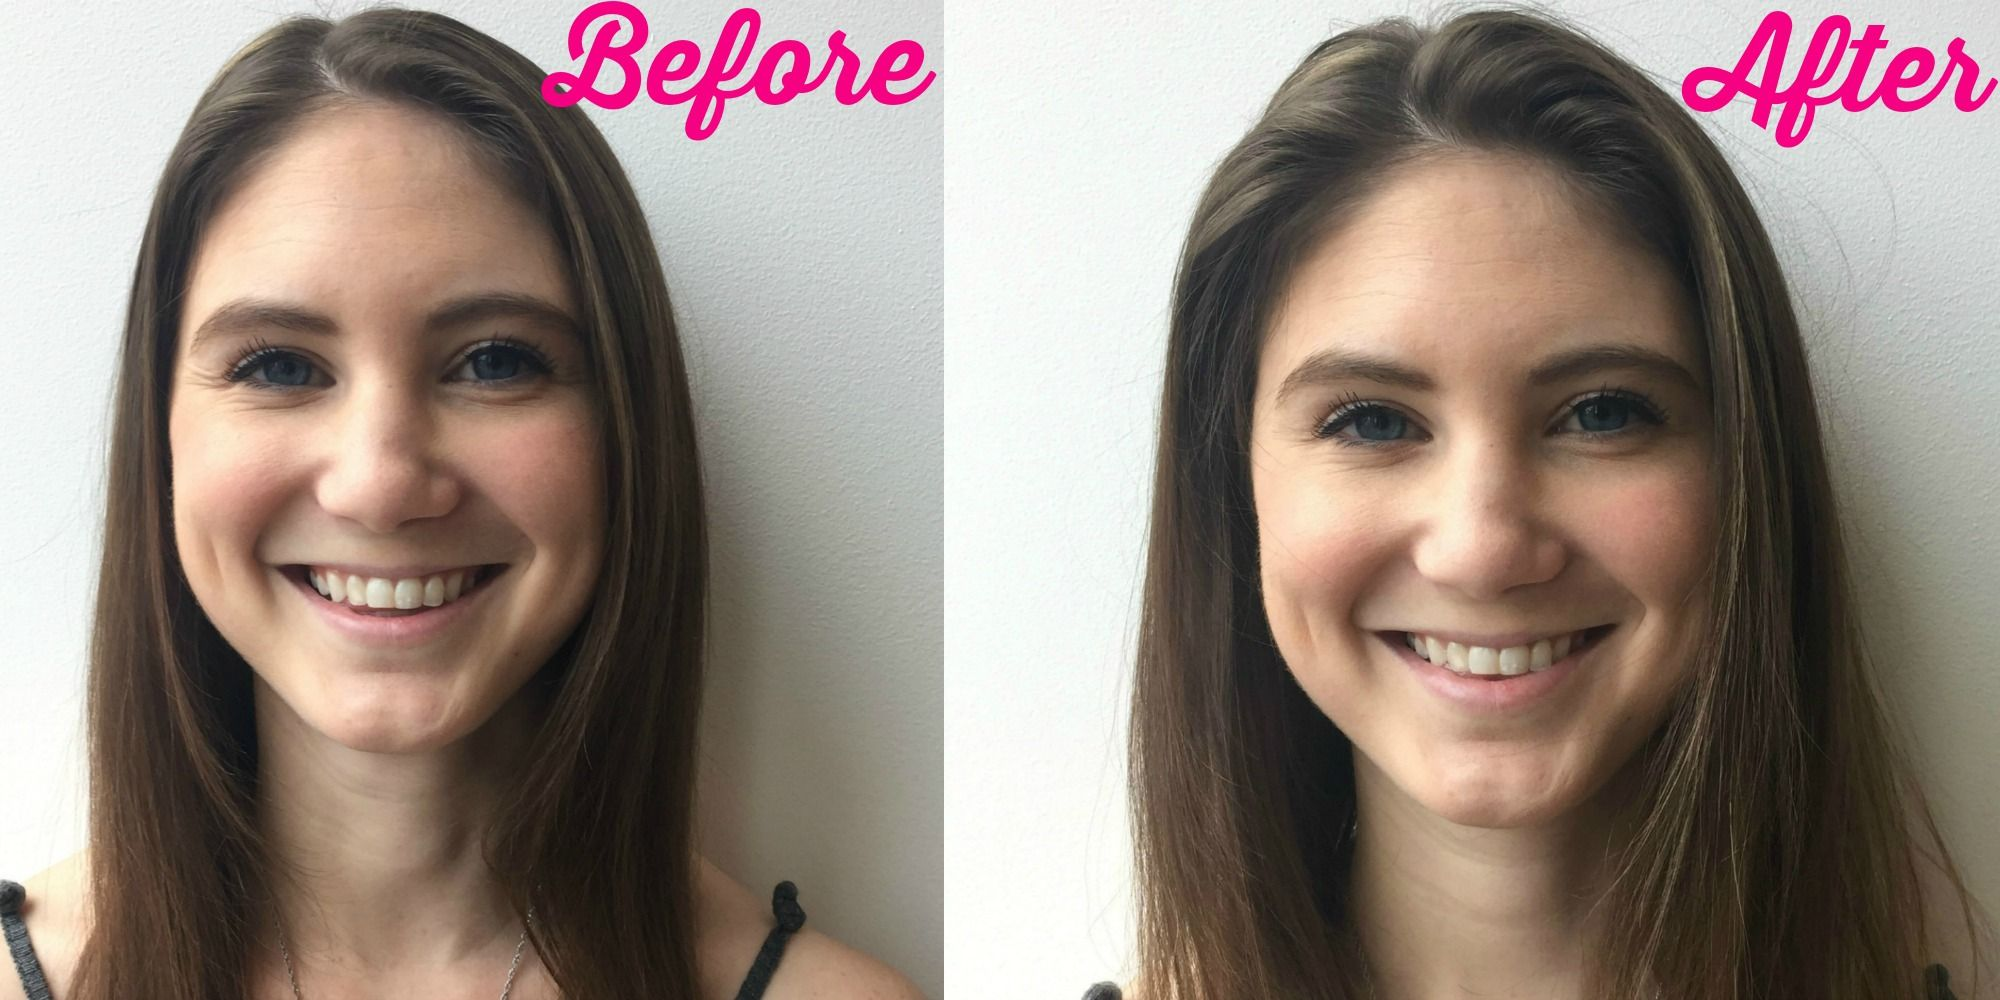 thin hair tips - how to get more hair volume with a toothbrush